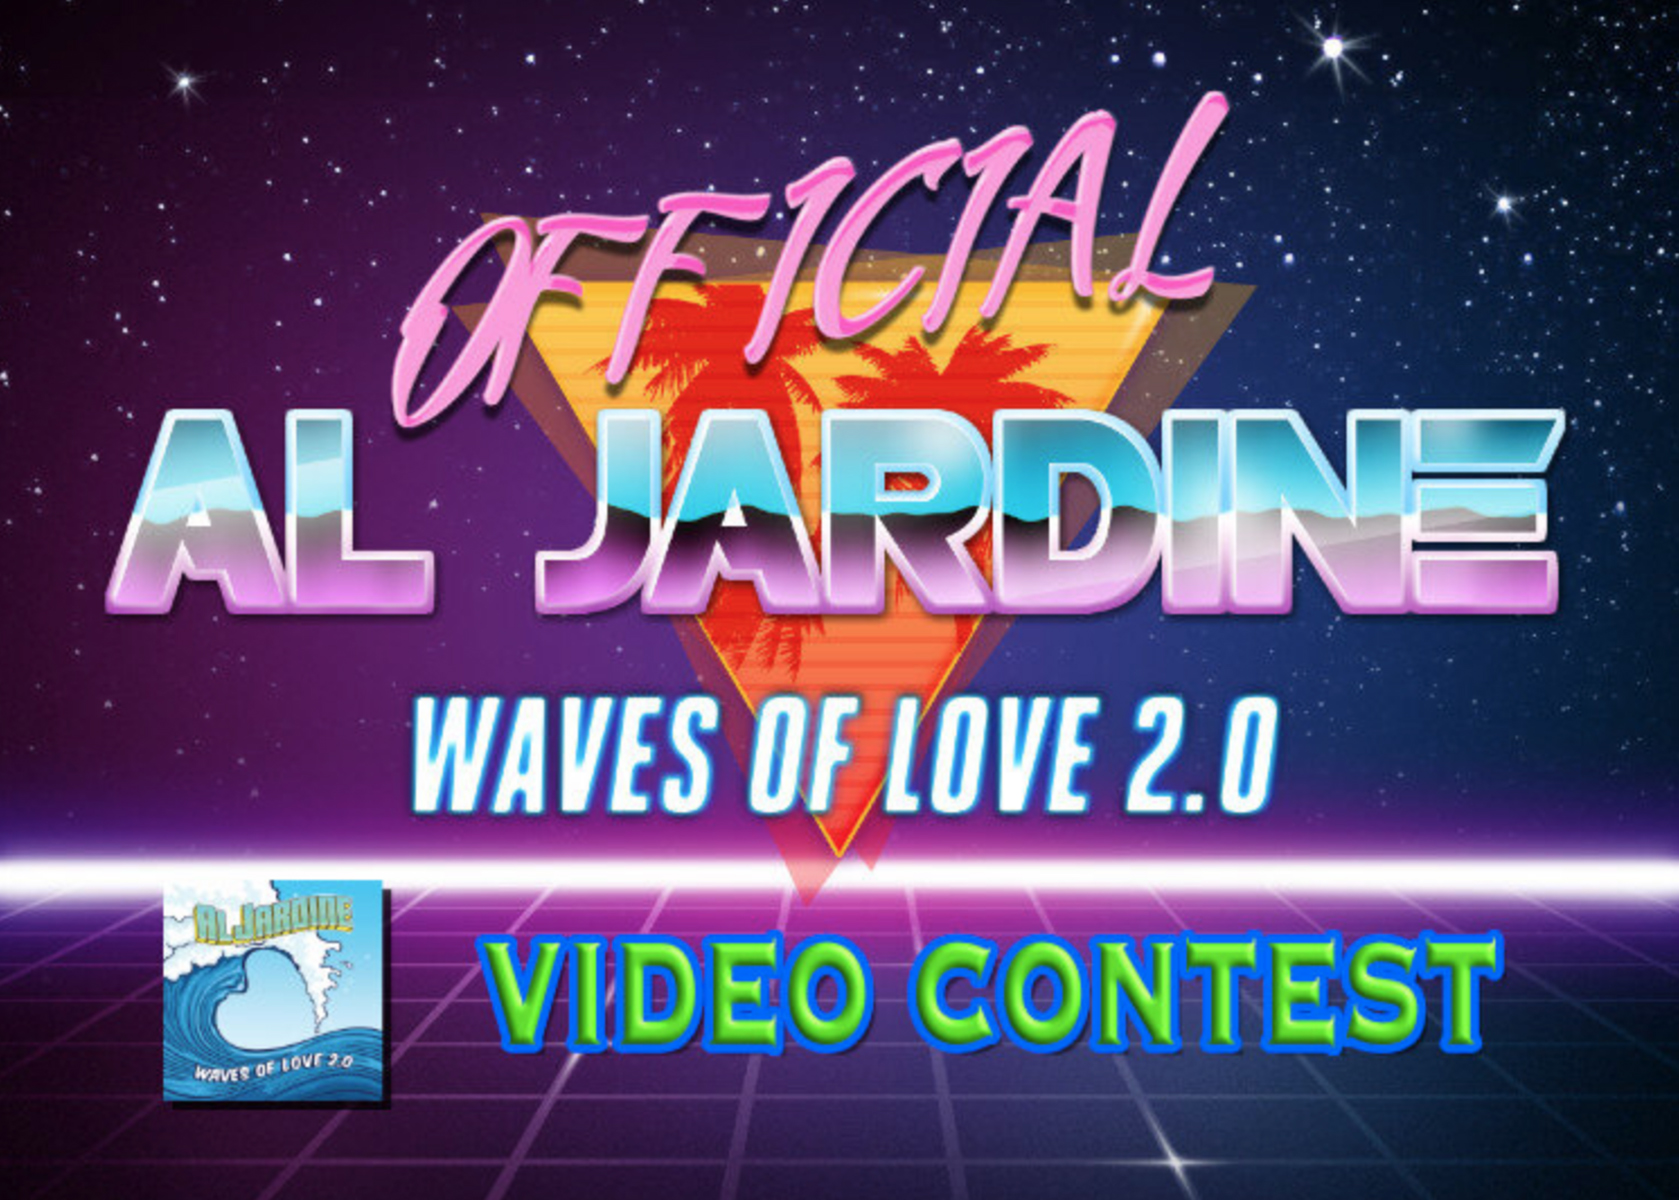 Waves contest